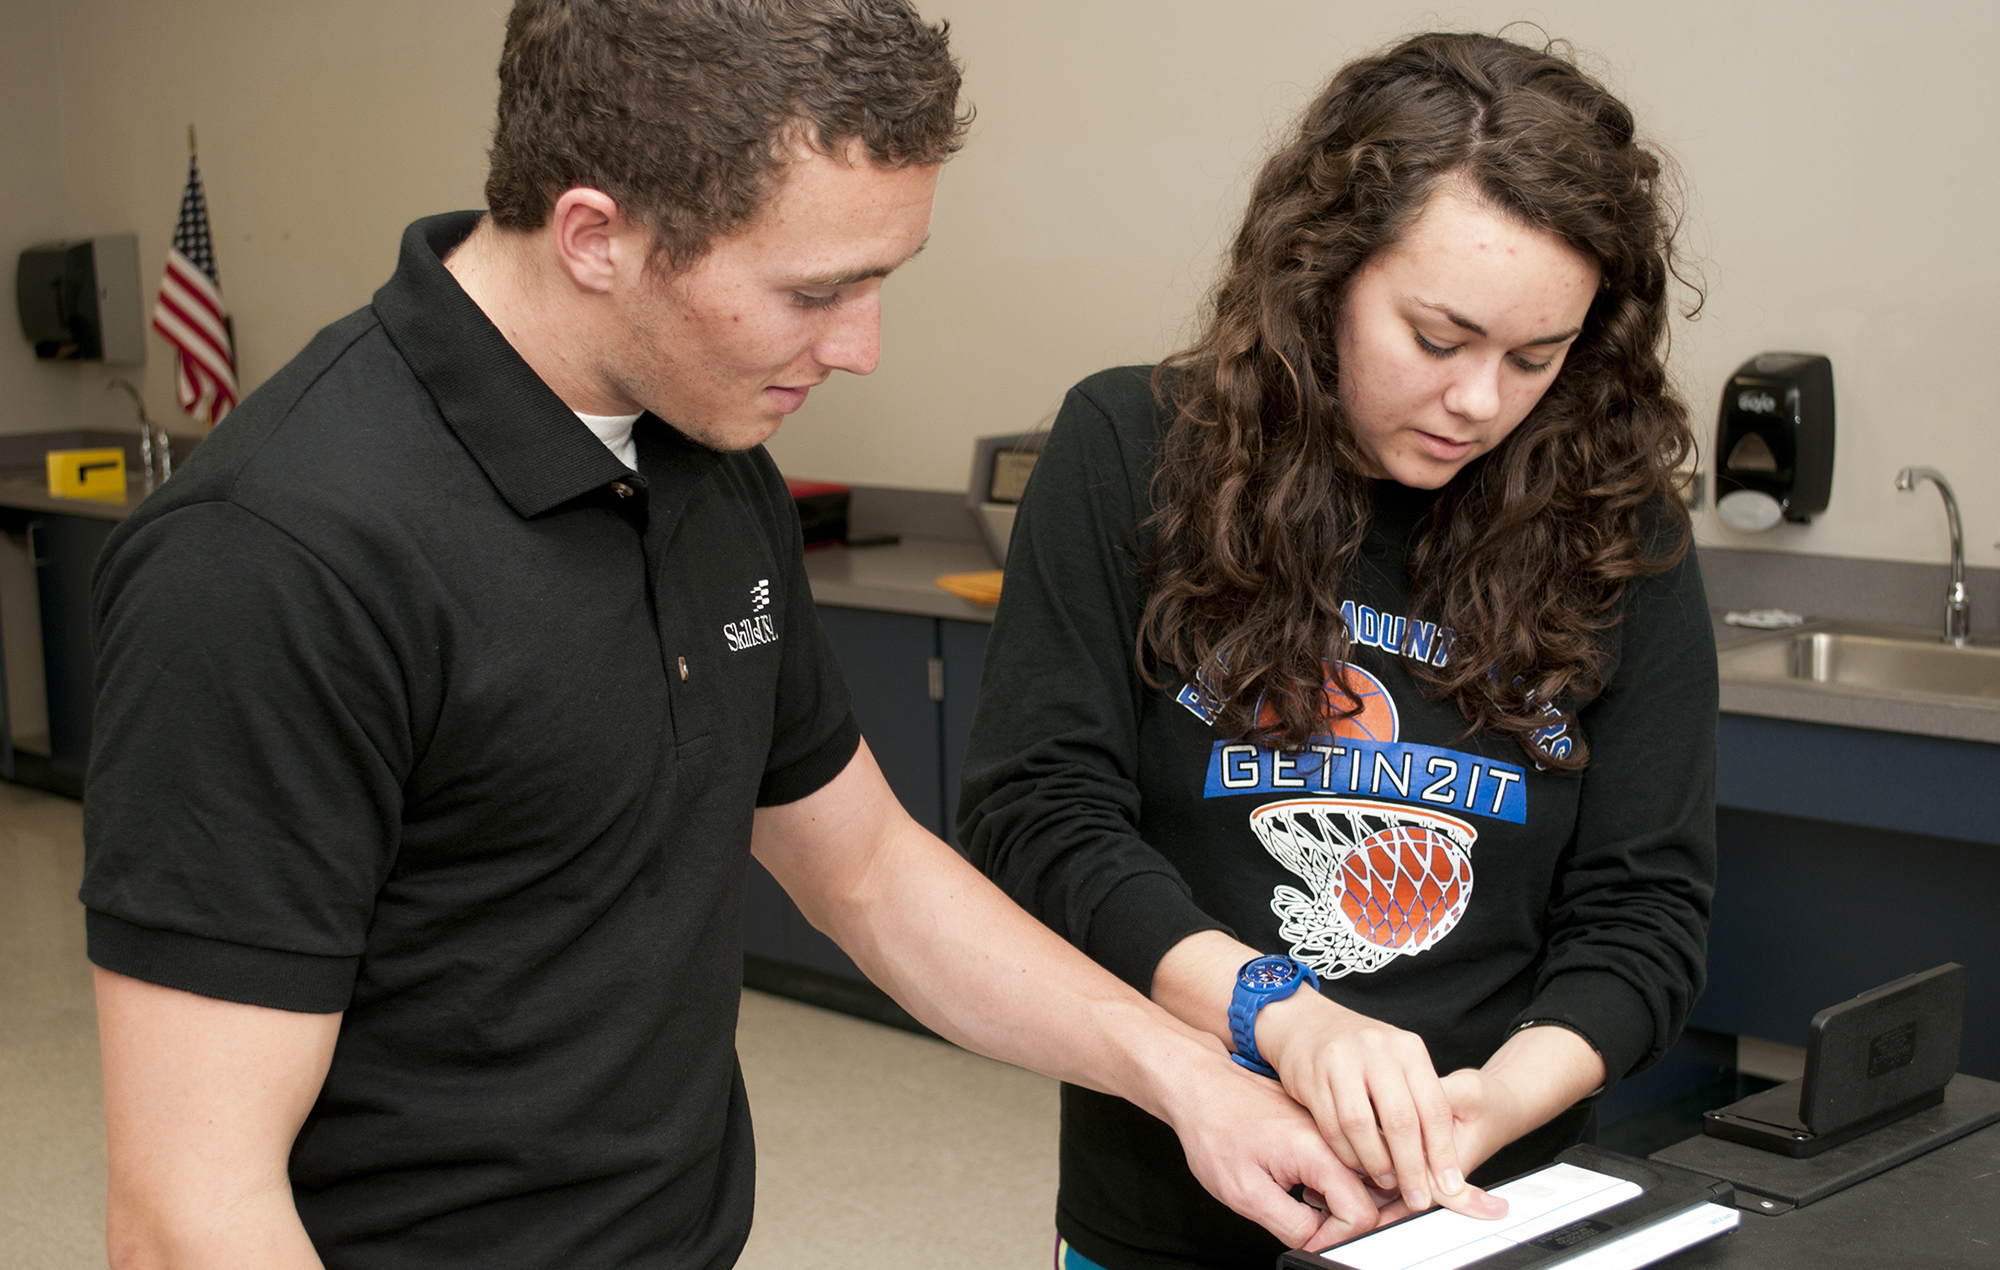 Female Criminal Justice student taking finger prints